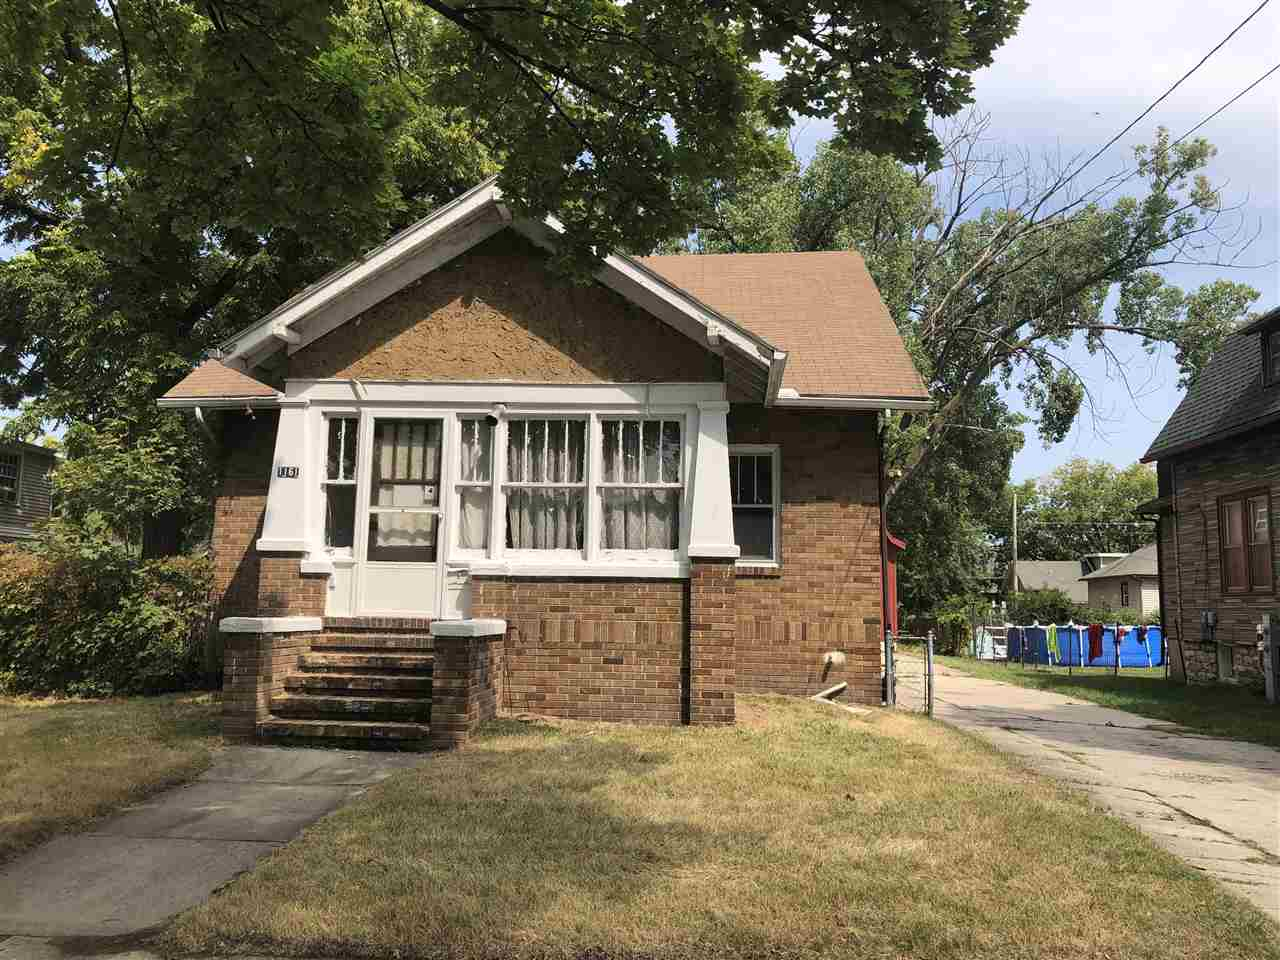 """4 bedroom, 1 full bath 1.5 story home in Green bay. Features formal dining room and large 28x30 foot garage with loft. Property sold """"As-Is, Where-Is""""."""